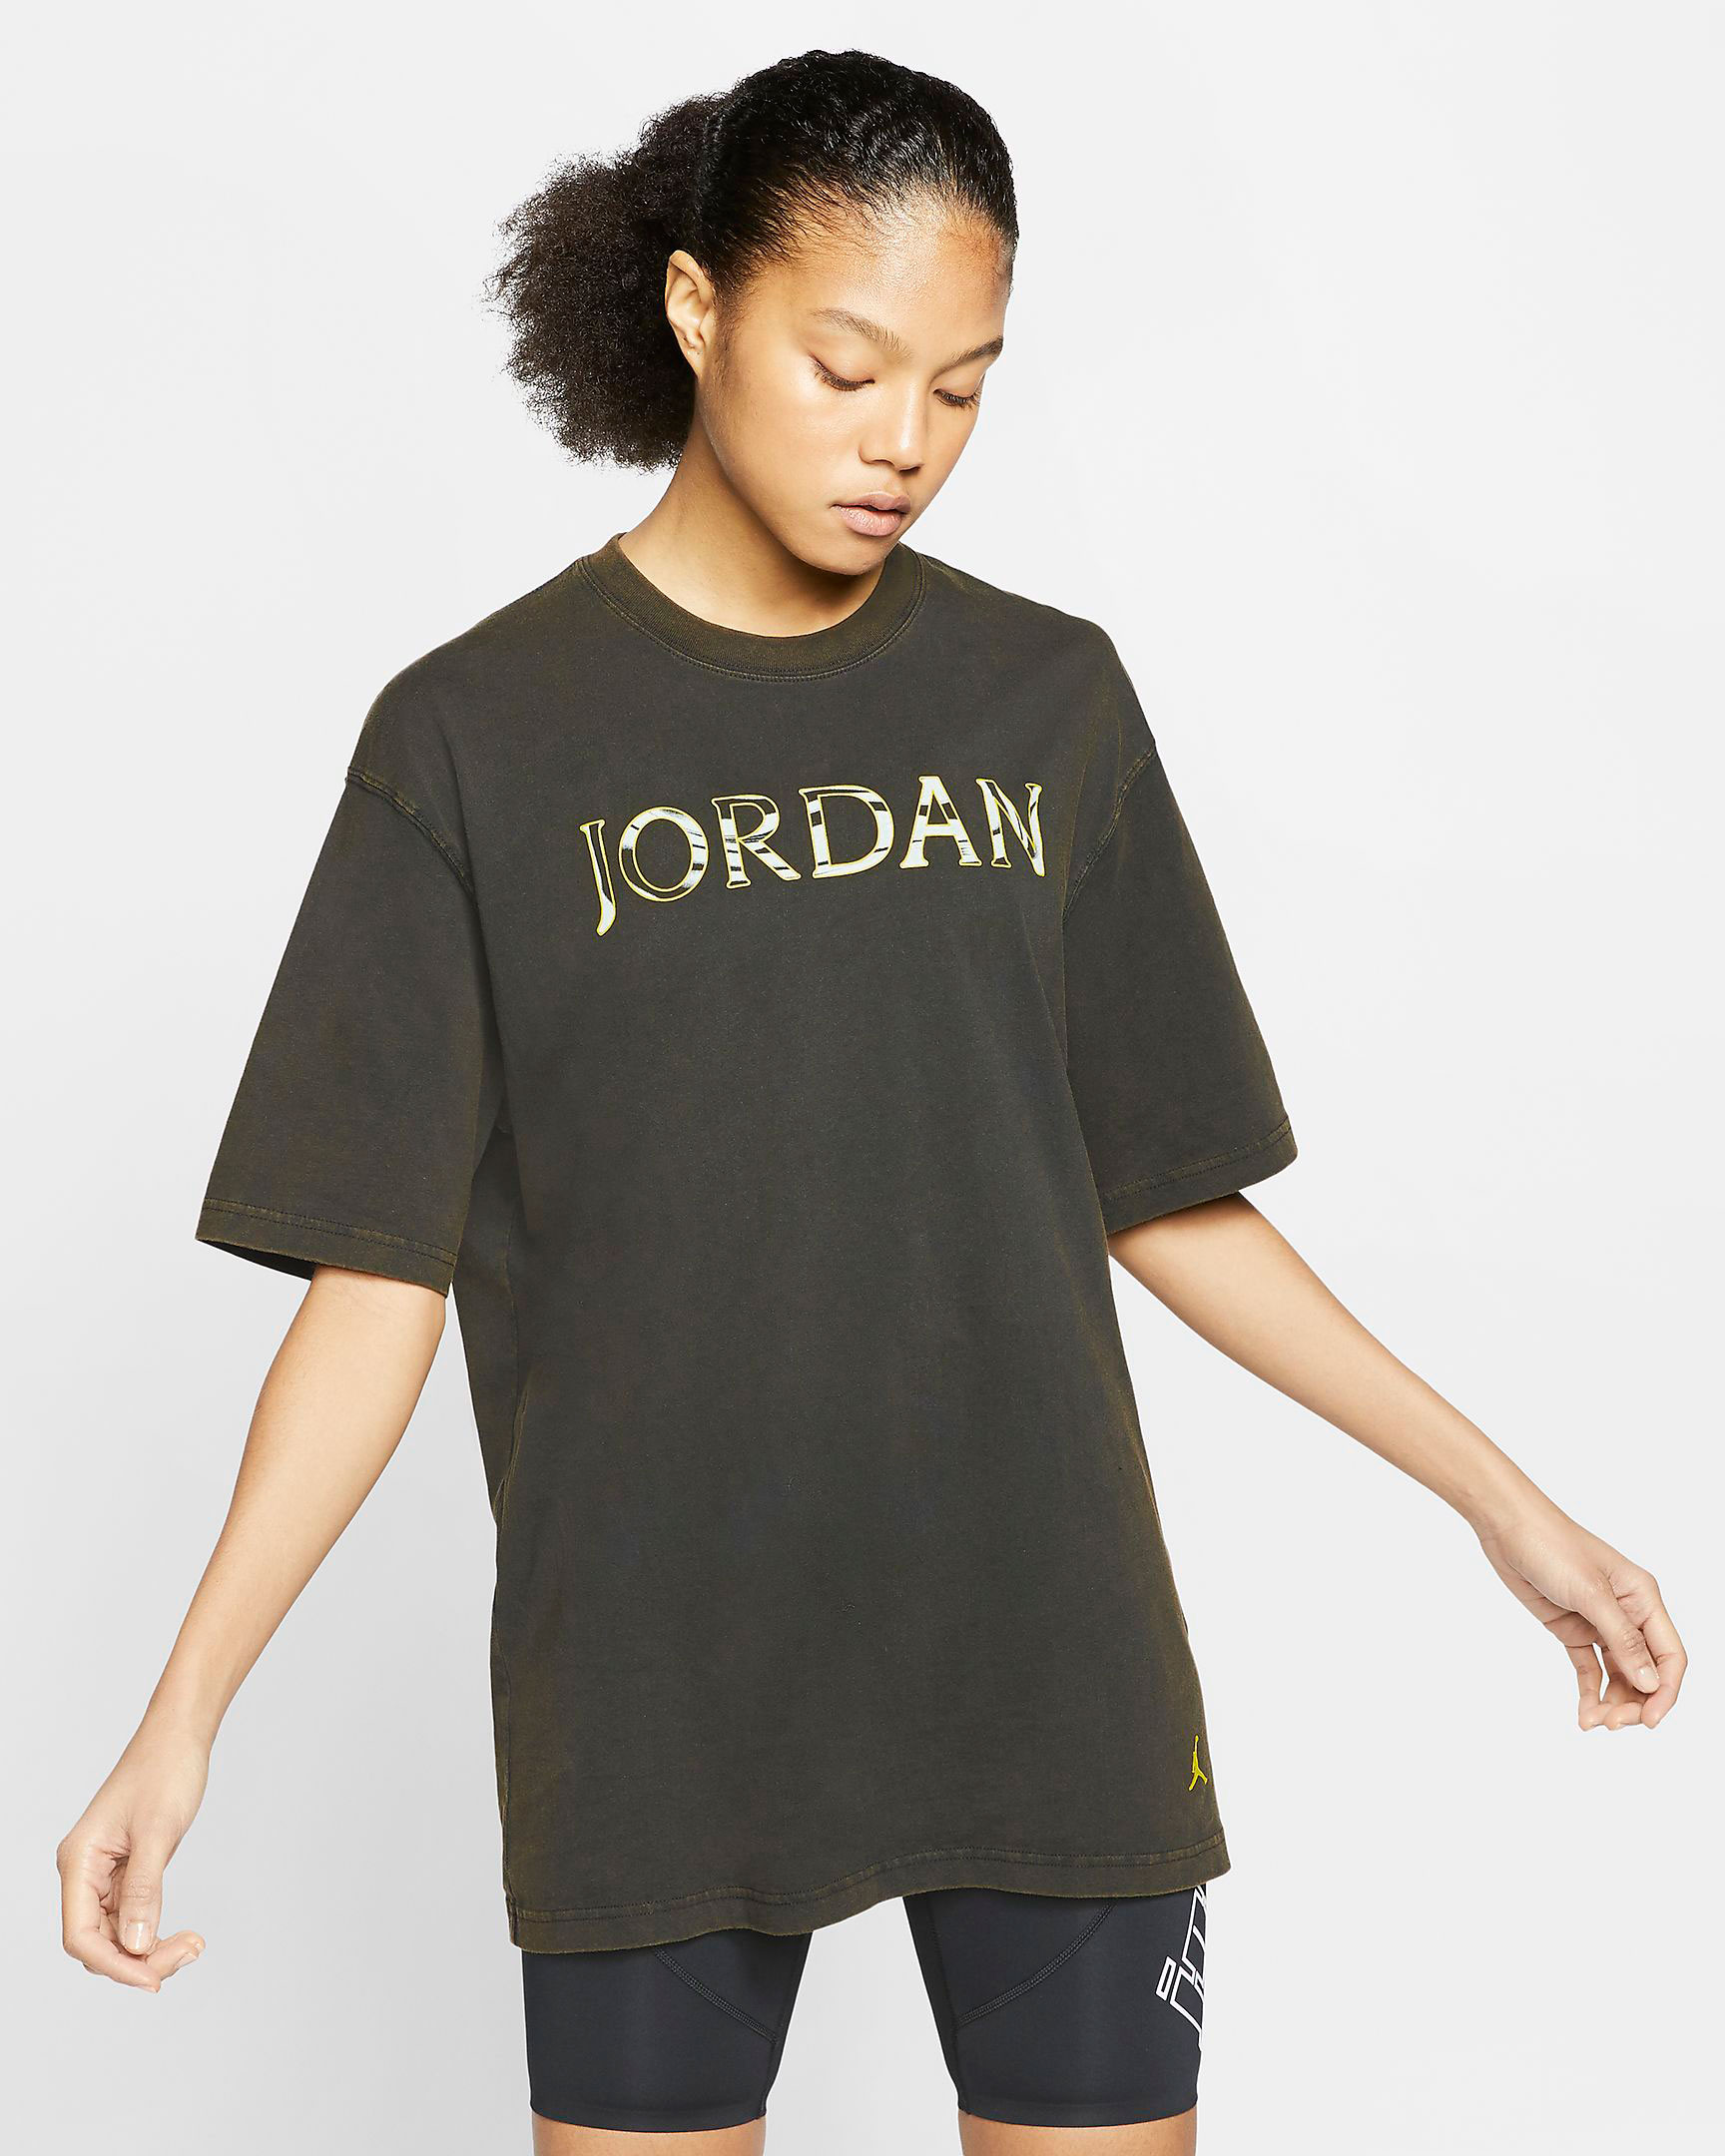 jordan-womens-utility-tee-shirt-black-green.